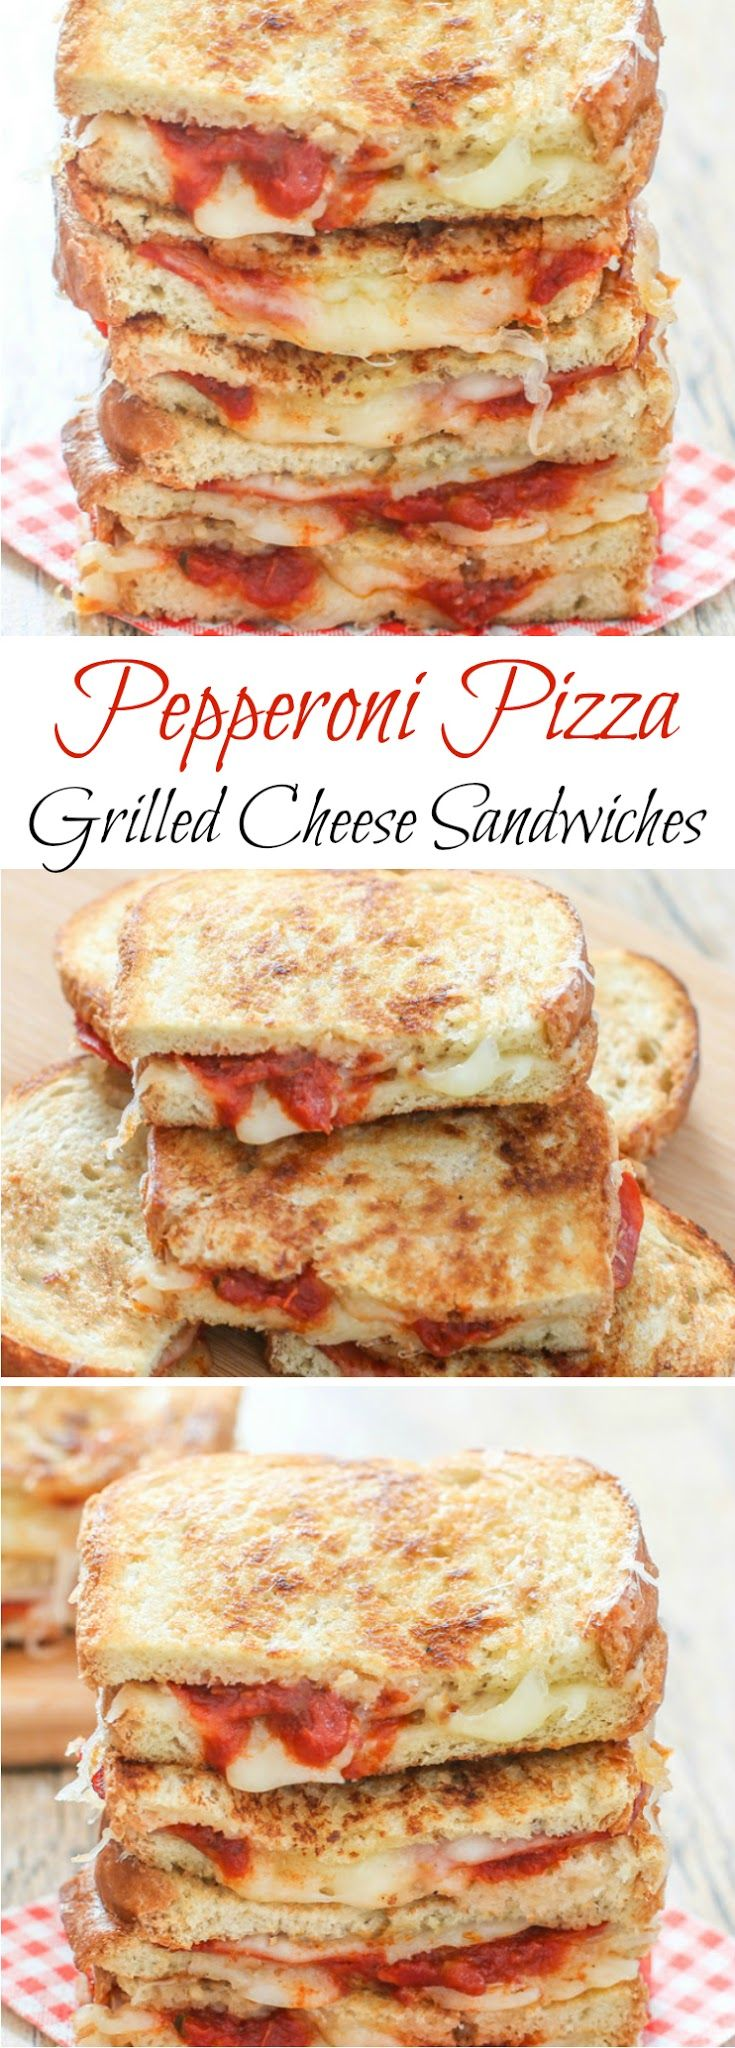 Pepperoni Pizza Grilled Cheese Sandwiches  The recipe is there after you read thru